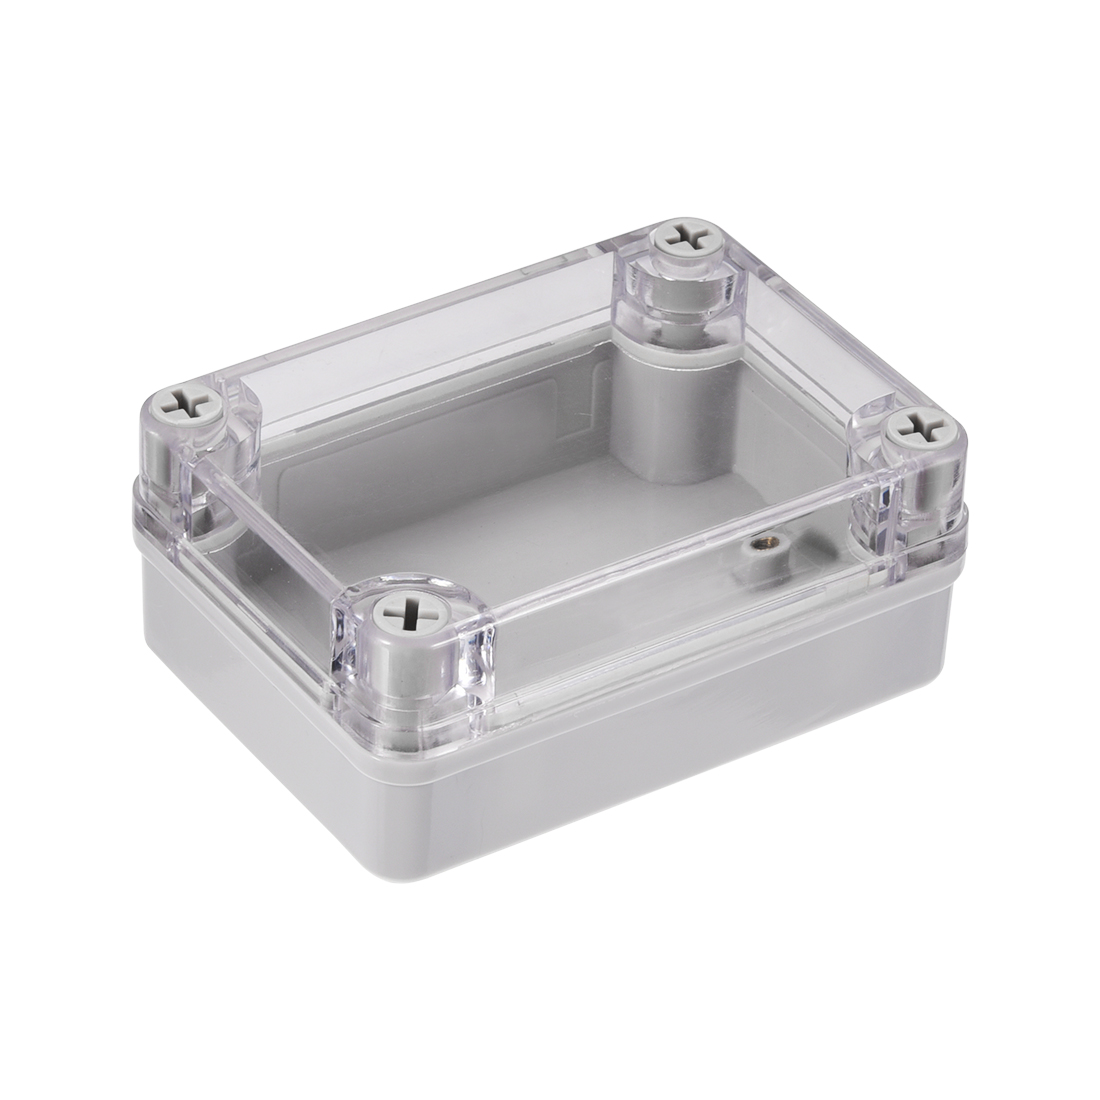 110 x 80 x 47mm Electronic ABS DIY Junction Box Enclosure Case w Clear Cover